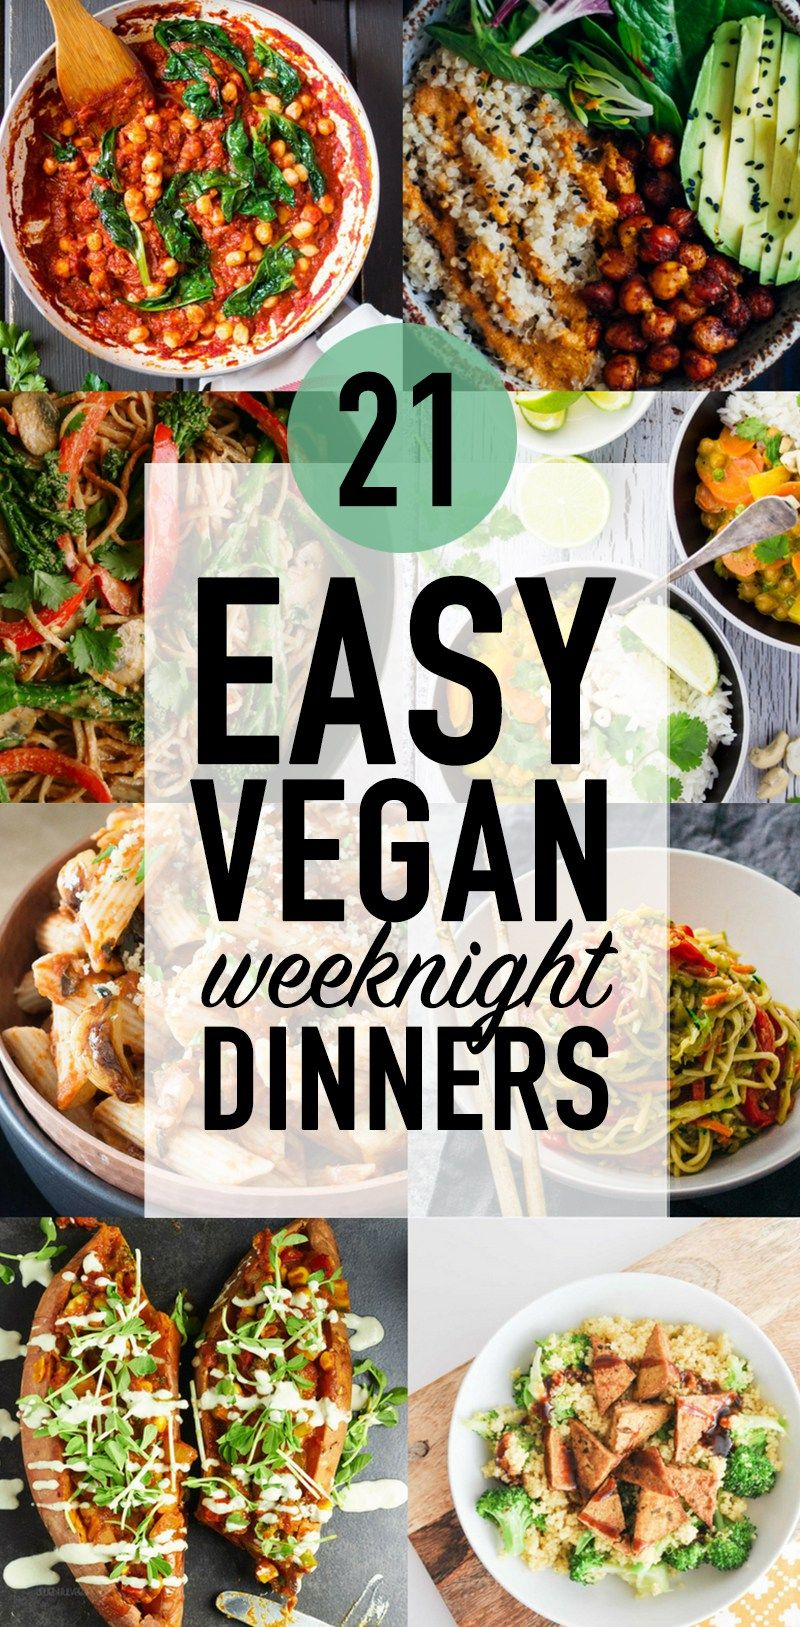 21 Easy Weeknight Dinners for